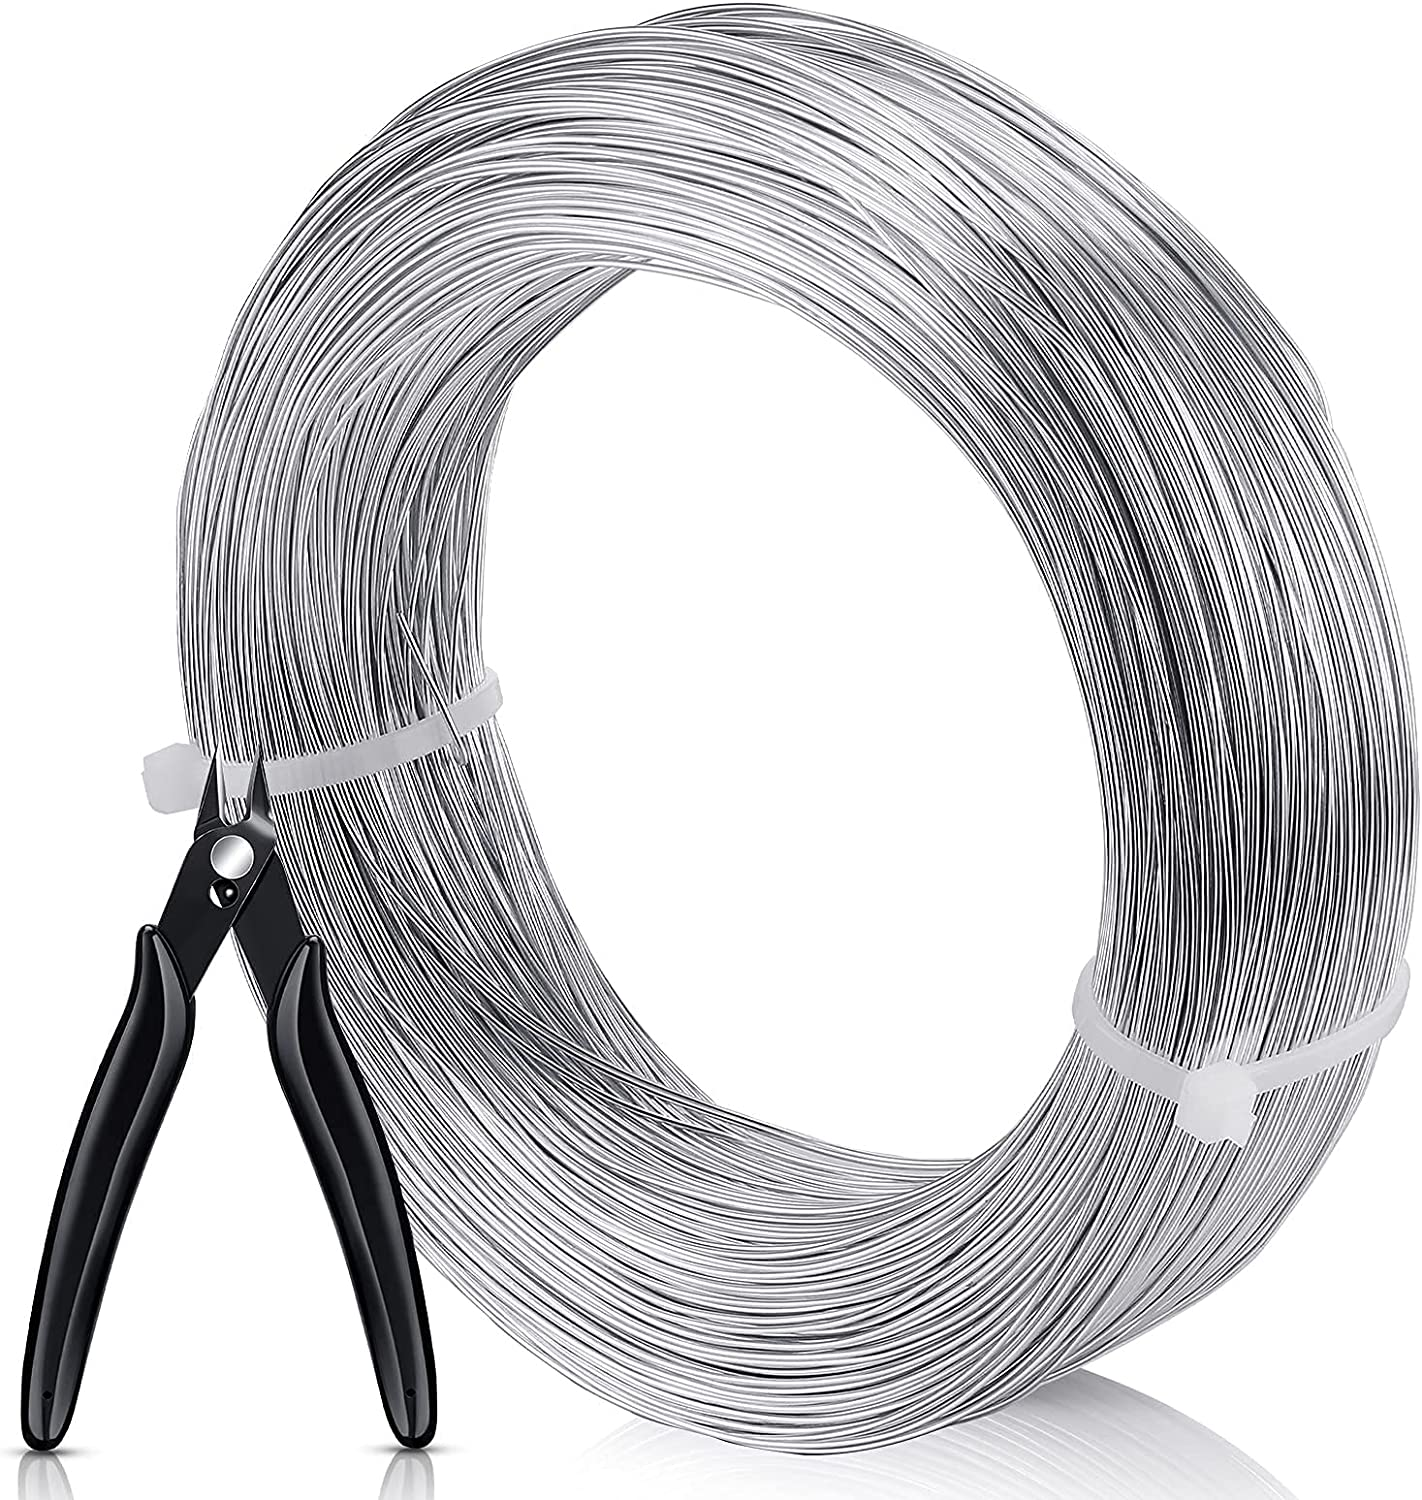 984 Feet Silver Aluminum Wire with Bendable Scul Los Angeles Mall Gauge 20 free Pliers